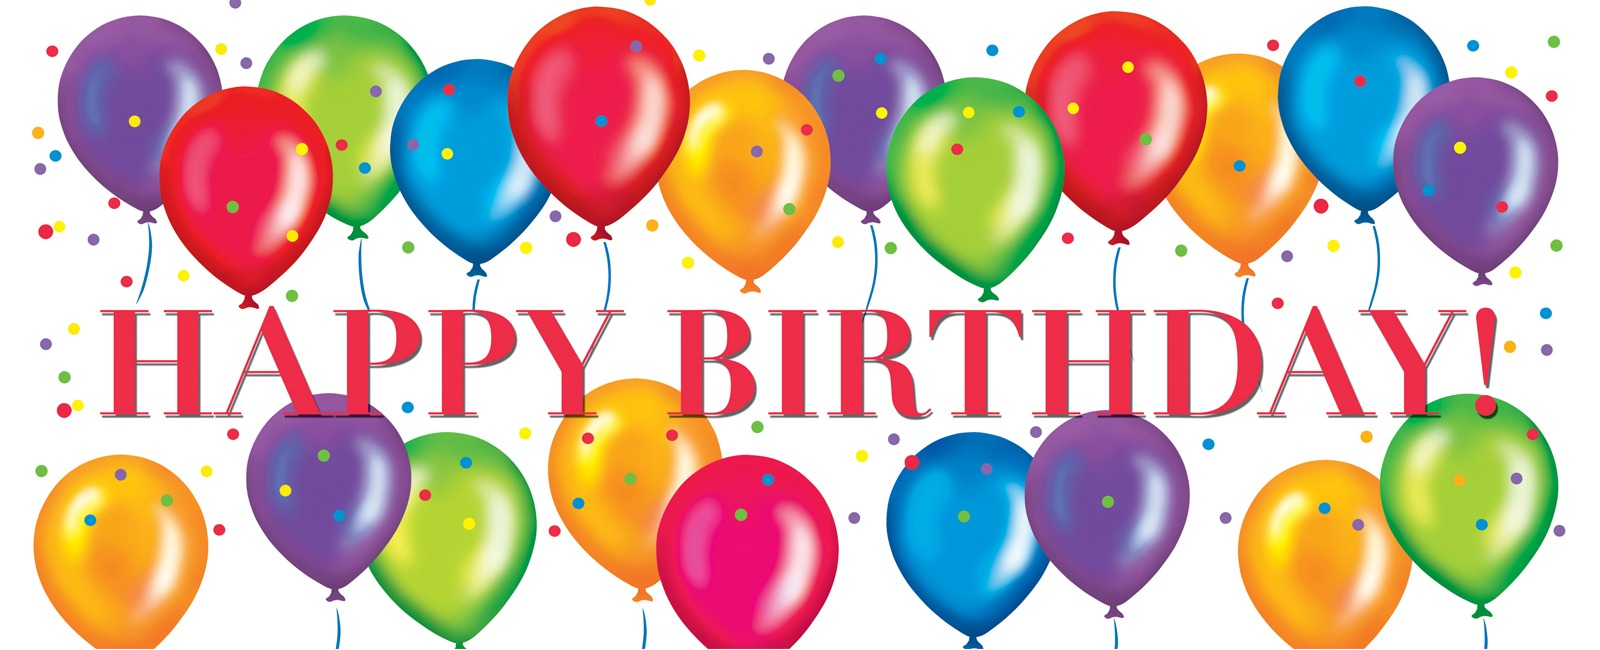 Happy birthday banner clipart 11 » Clipart Station.